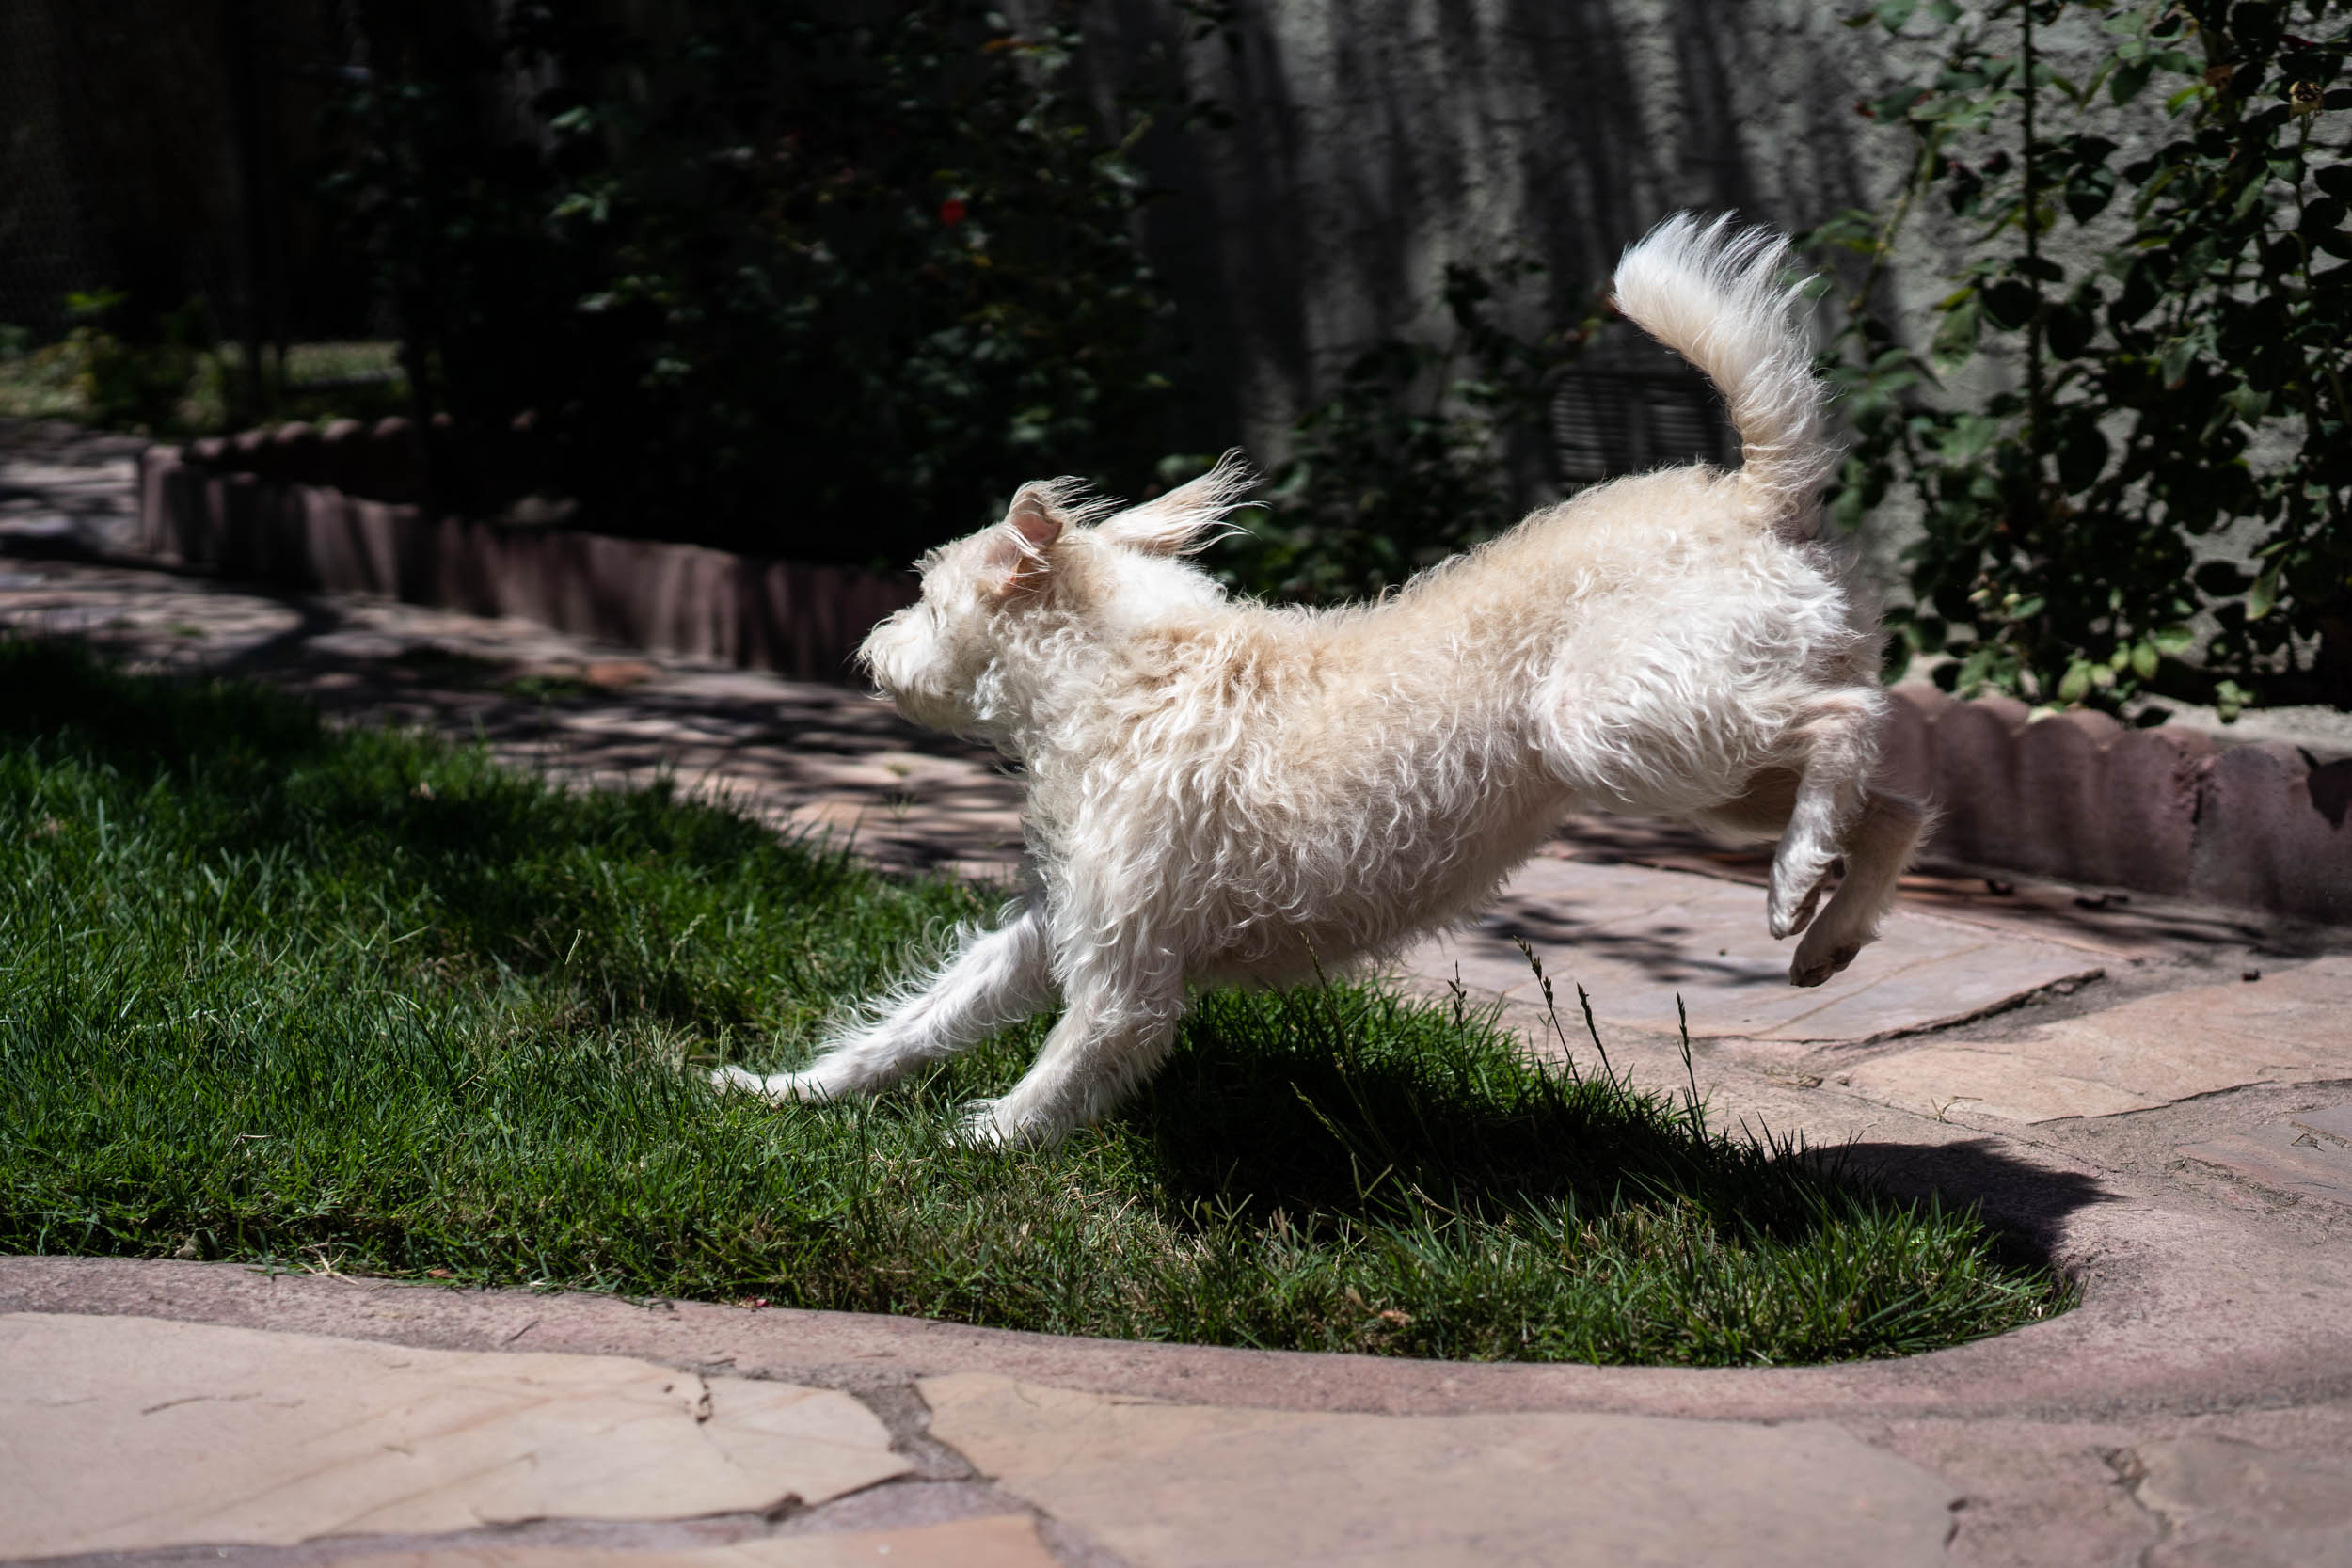 And the elusive action shot. All I had to do is wait for that little Chihuahua to walk by - she hates that guy.